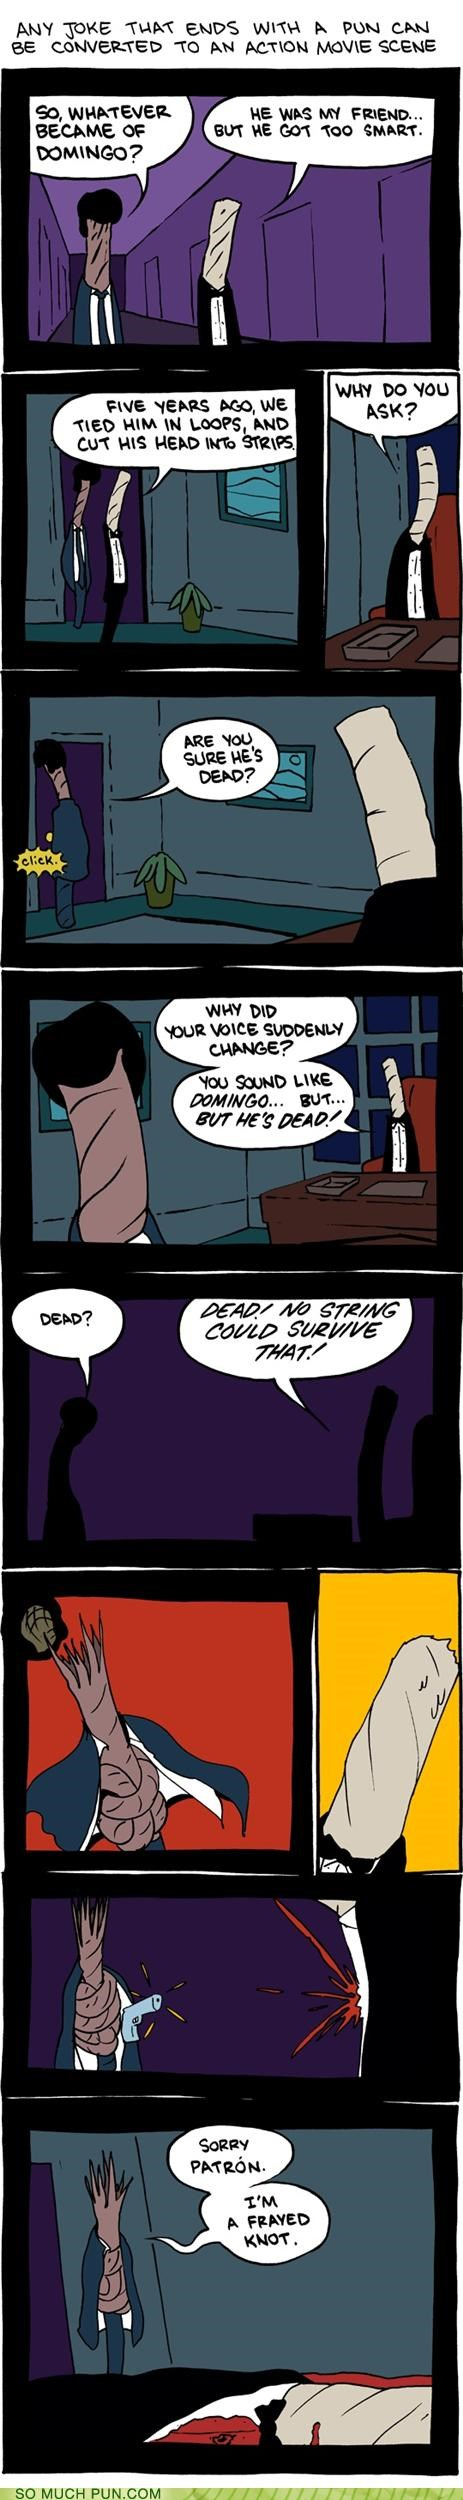 action,afraid,csi,david caruso,frayed,homophones,knot,Movie,not,pun,SMBC,strategy,trick